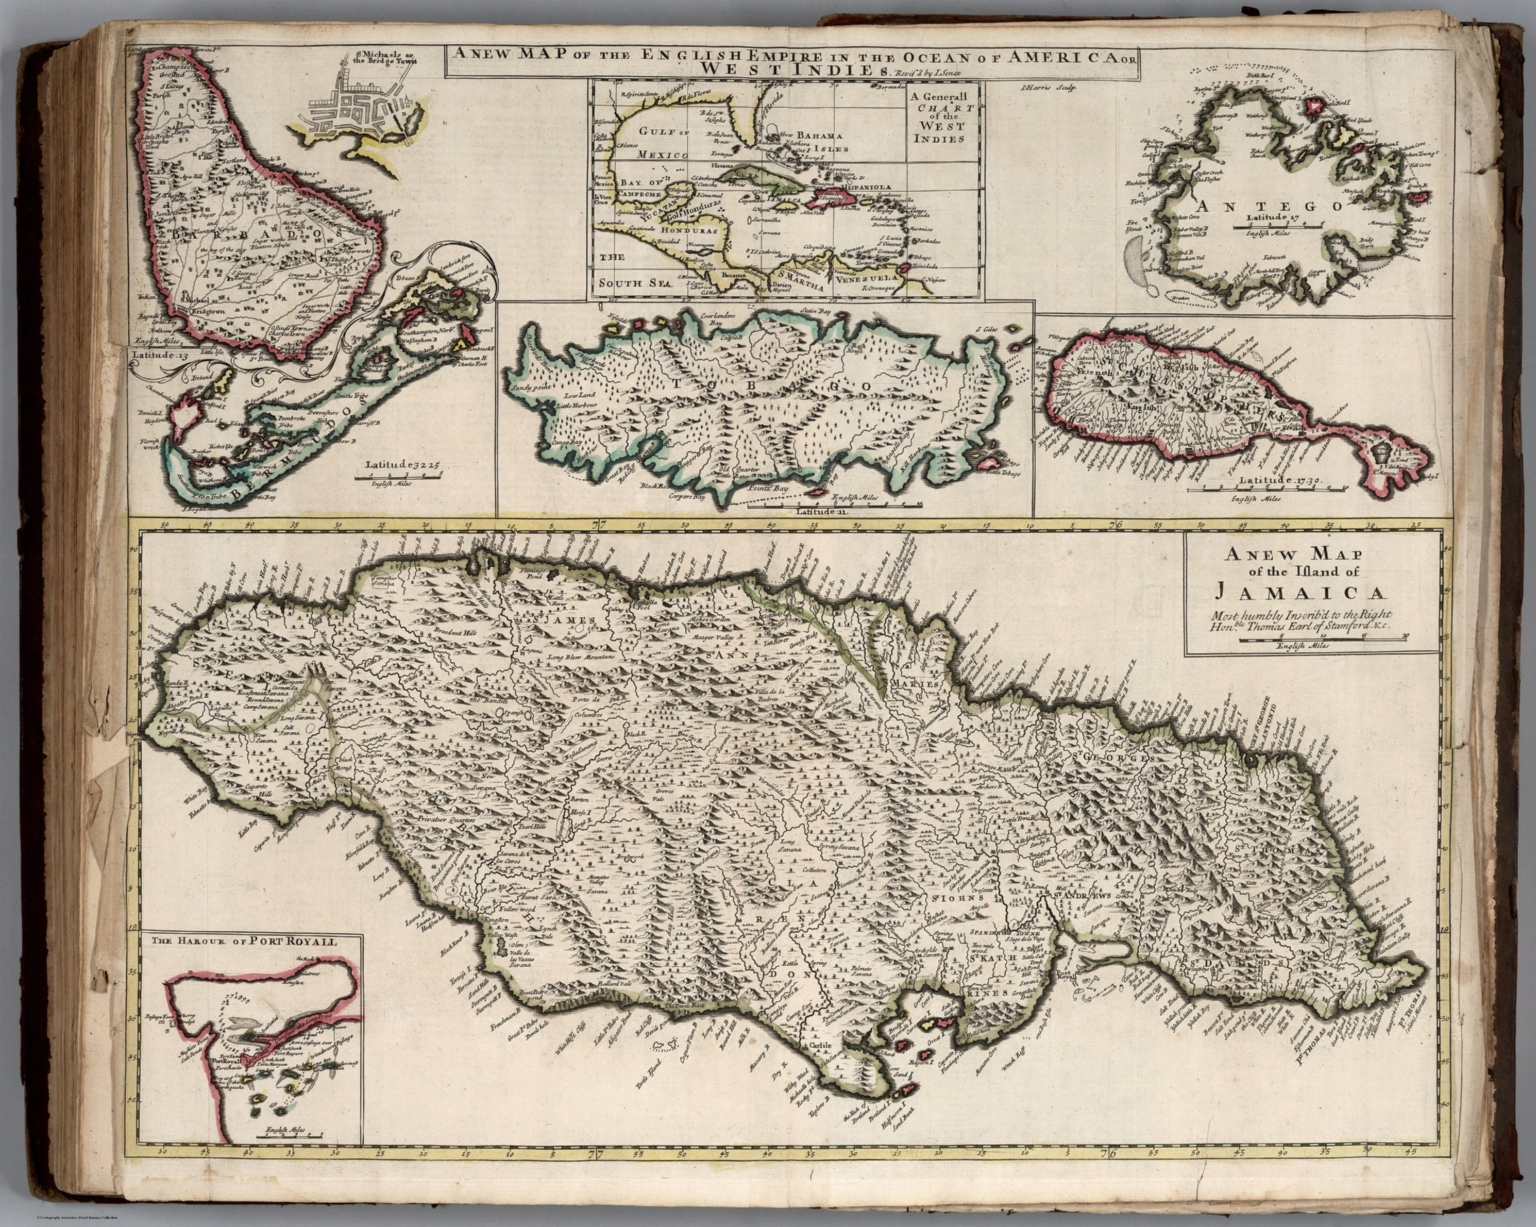 New Map of the English Empire in the Ocean of America or West Indies.